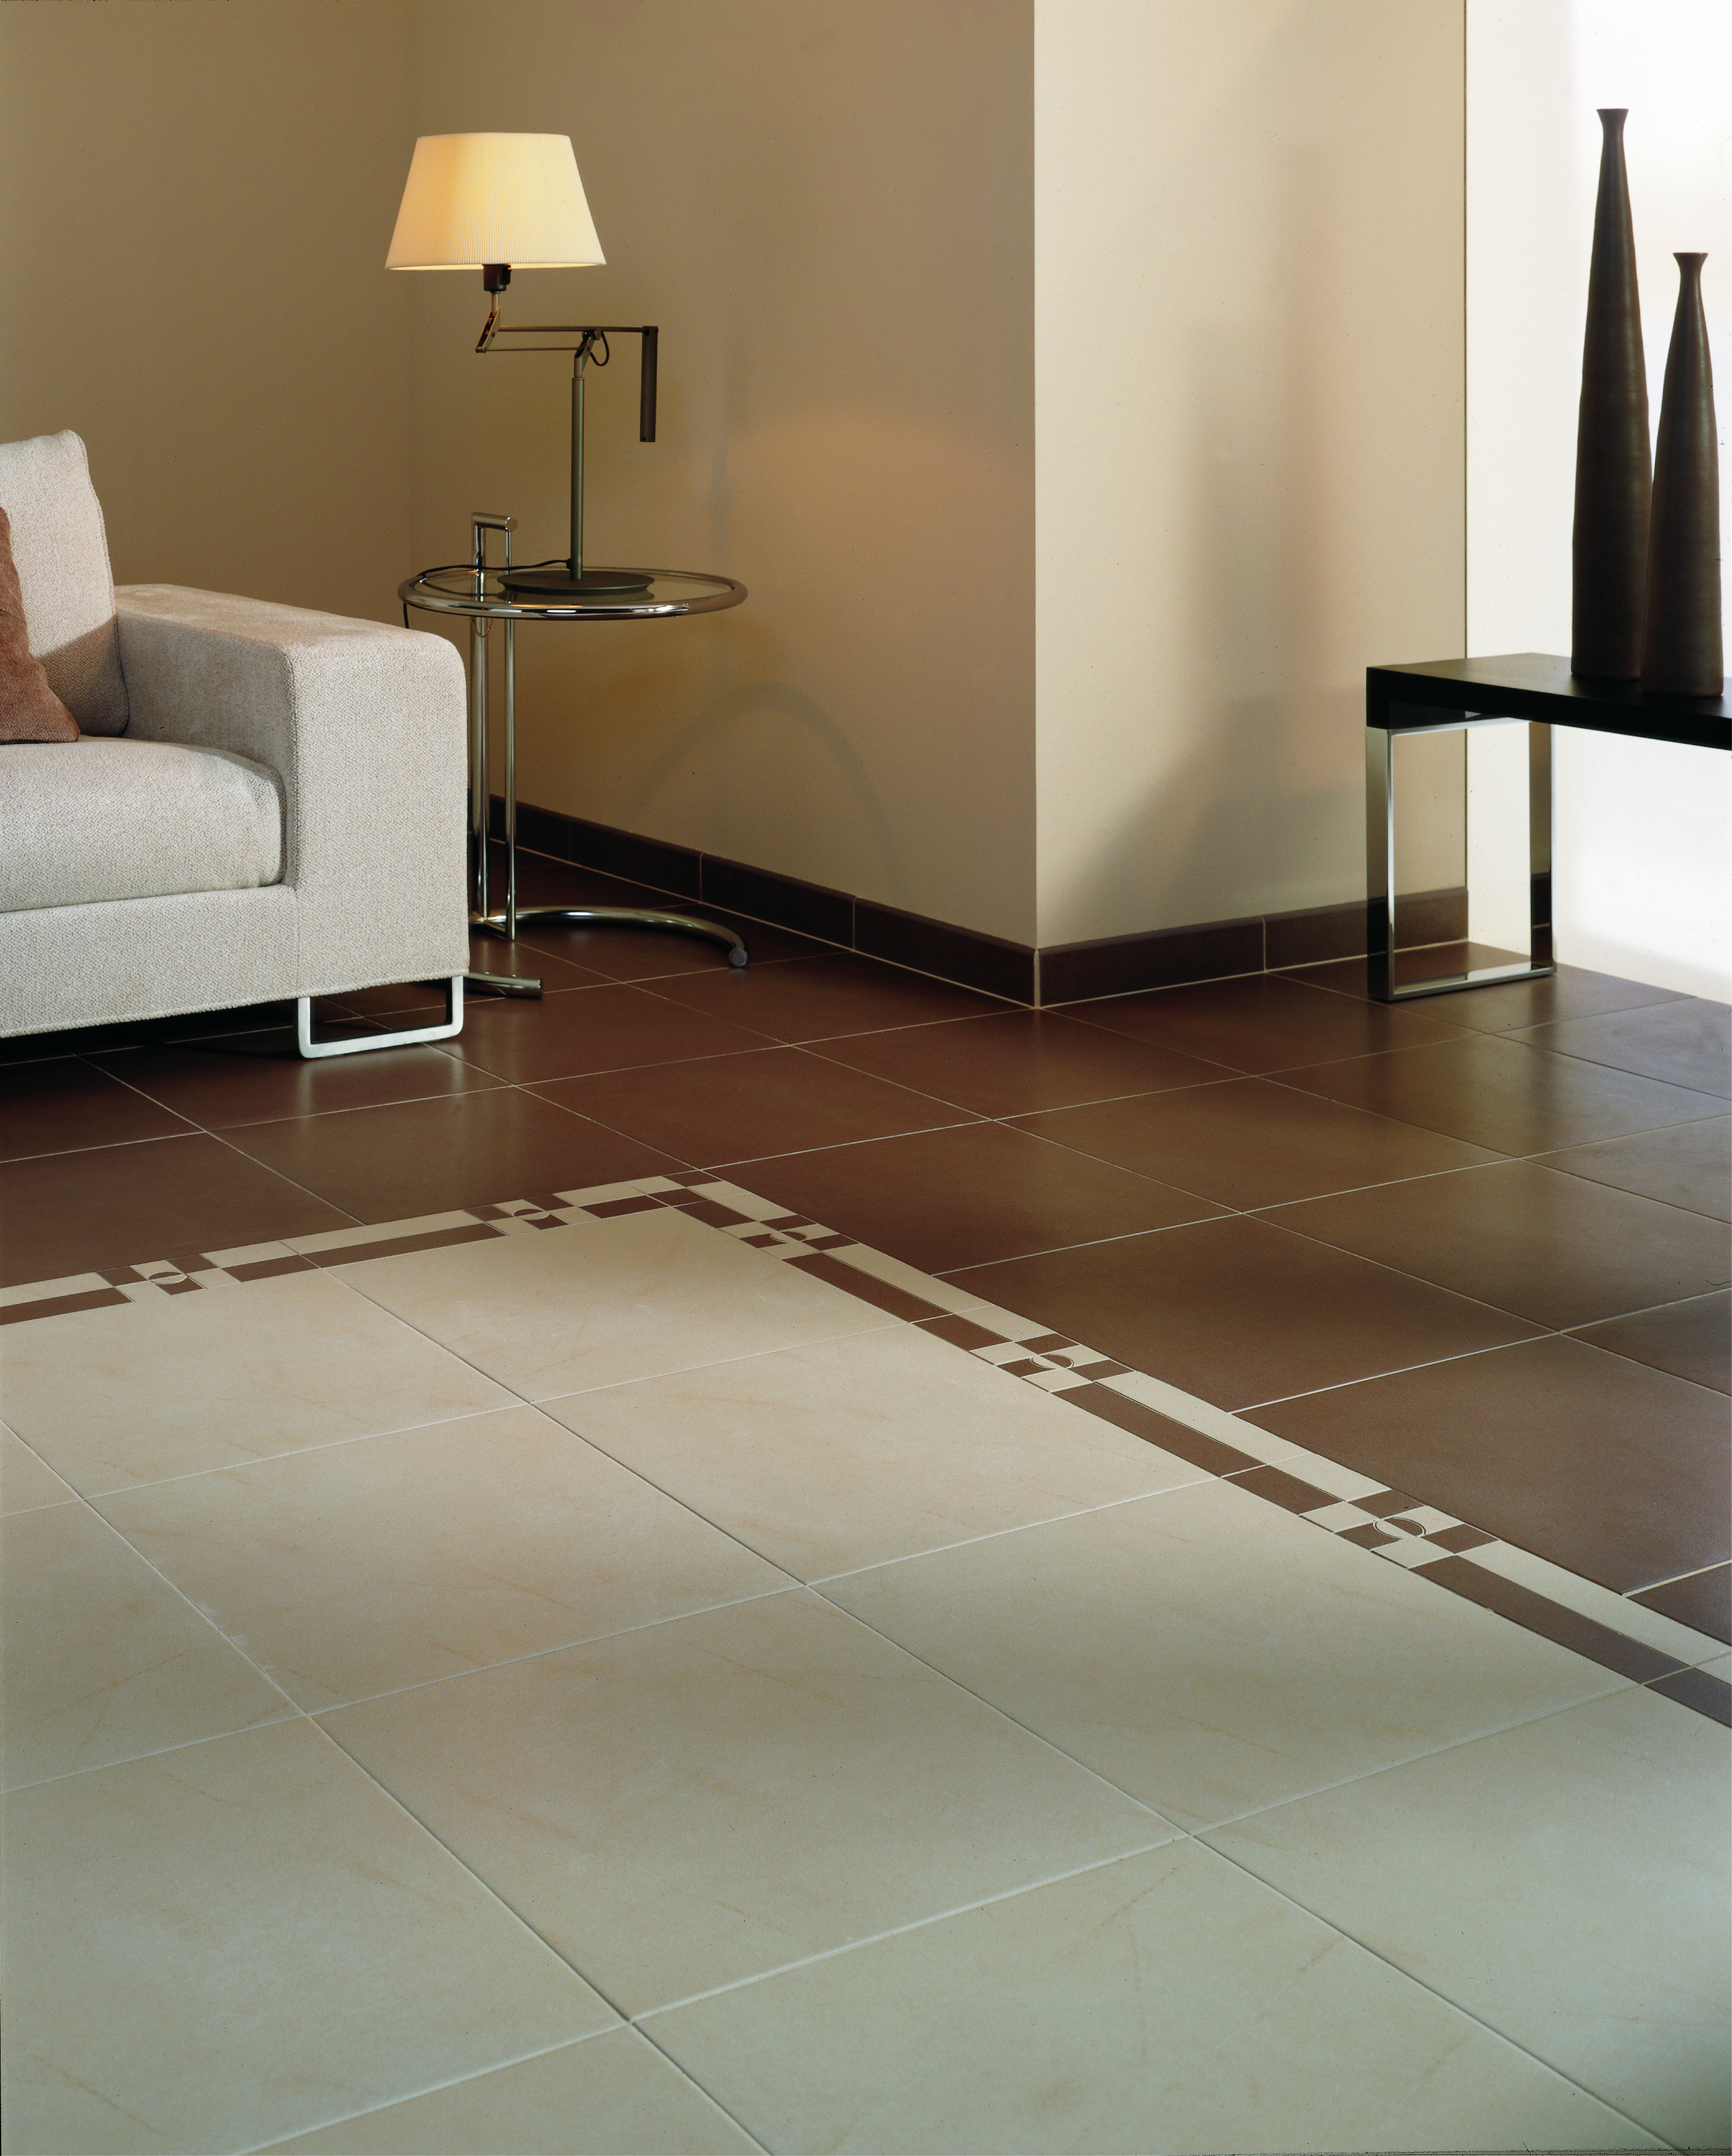 Marron evolution beige evolution 41x41cm floor tile hv marron evolution beige evolution 41x41cm floor tile doublecrazyfo Choice Image